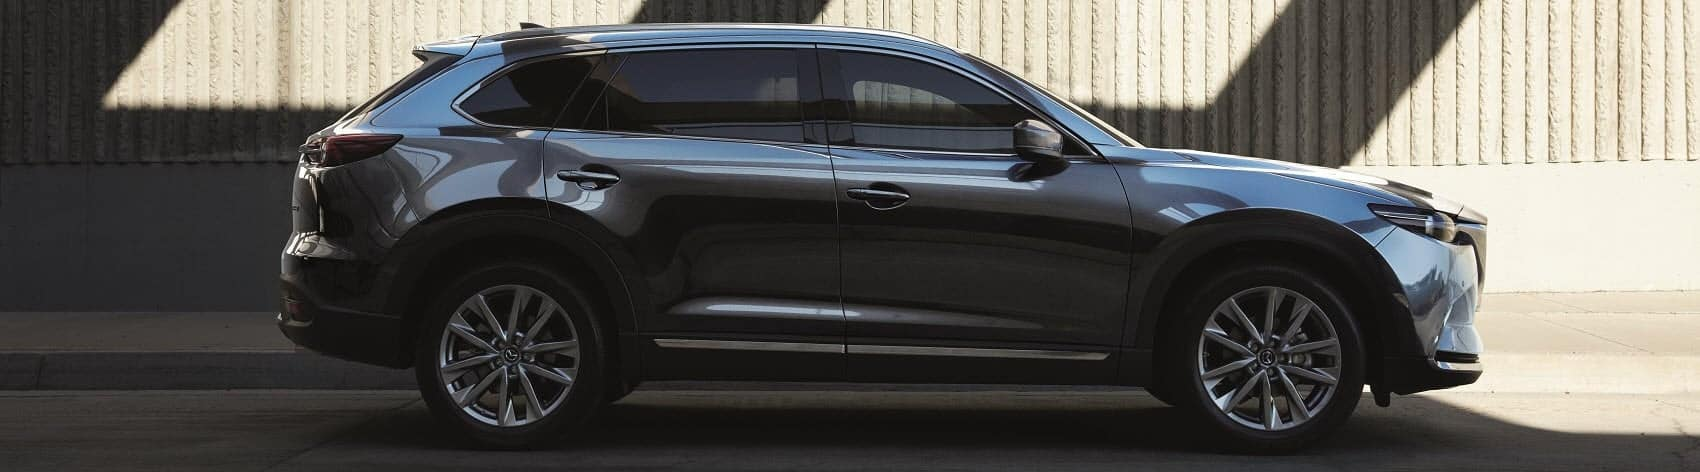 hight resolution of both mazda and acura know what they re doing when it comes to luxury suvs dripping with elegance and style they re known to make a scene whether you re on